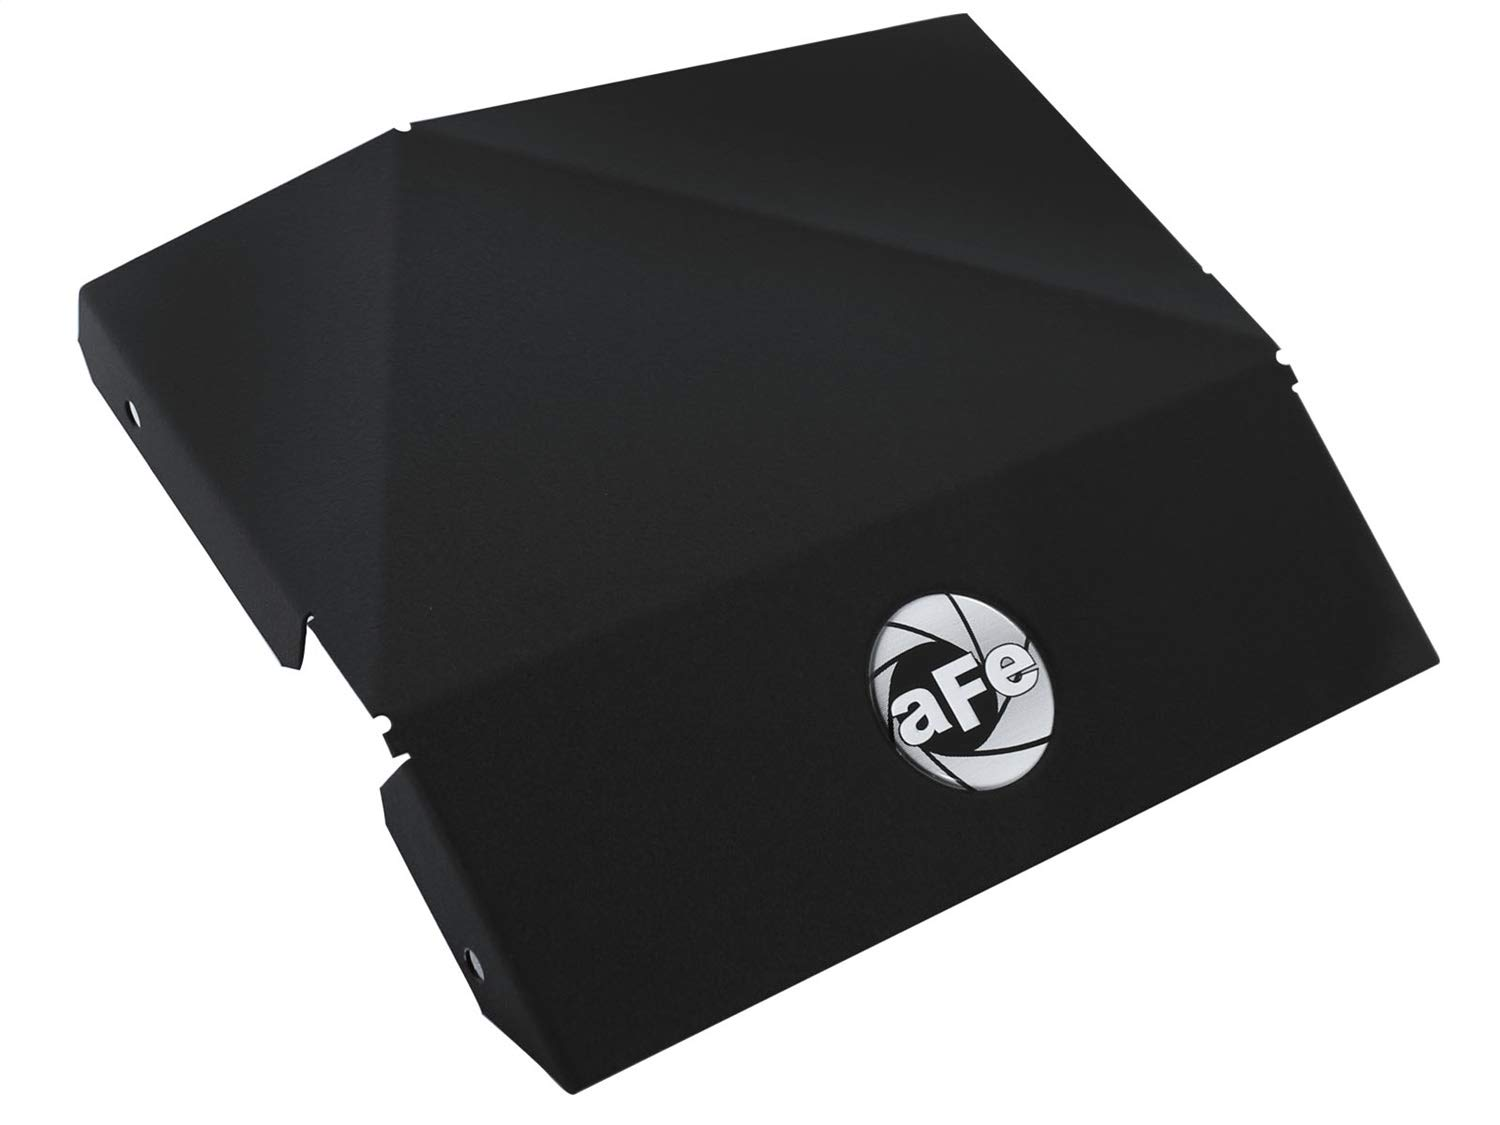 aFe Power 54-32418 Magnum Force Intake System Cover for RAM Diesel Truck